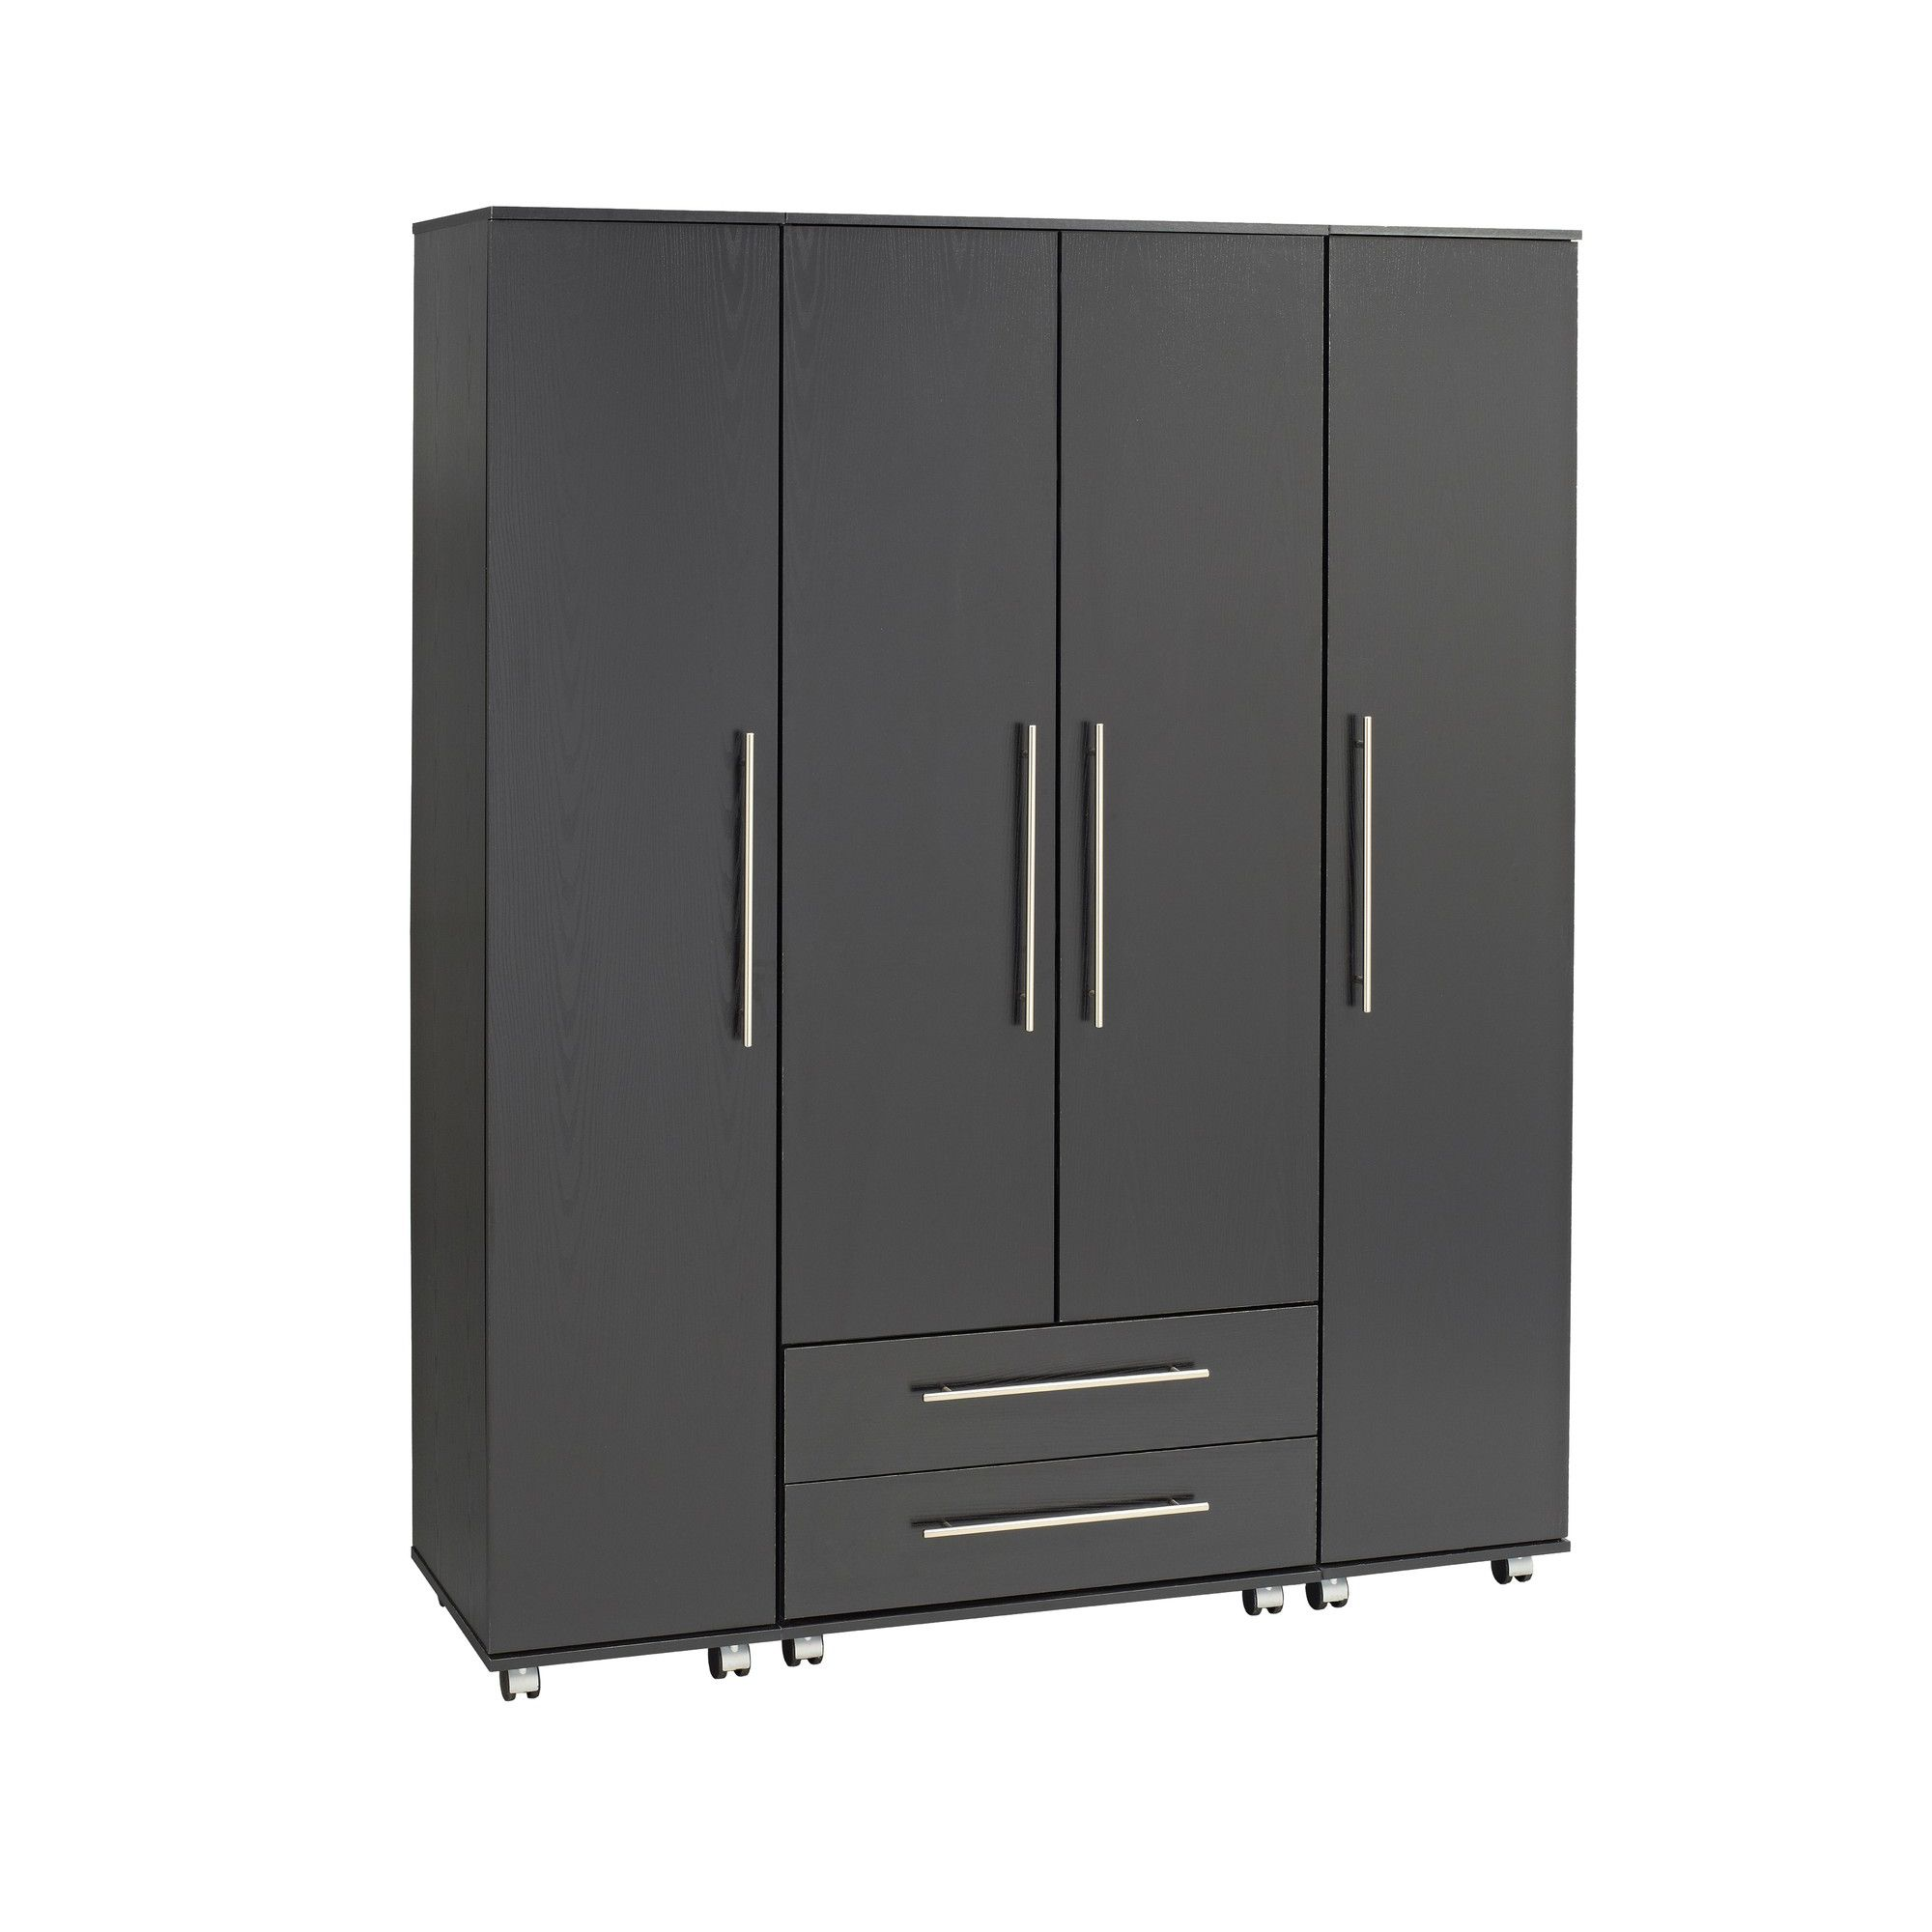 Ideal Furniture Bobby 4 Door Wardrobe - Black at Tesco Direct